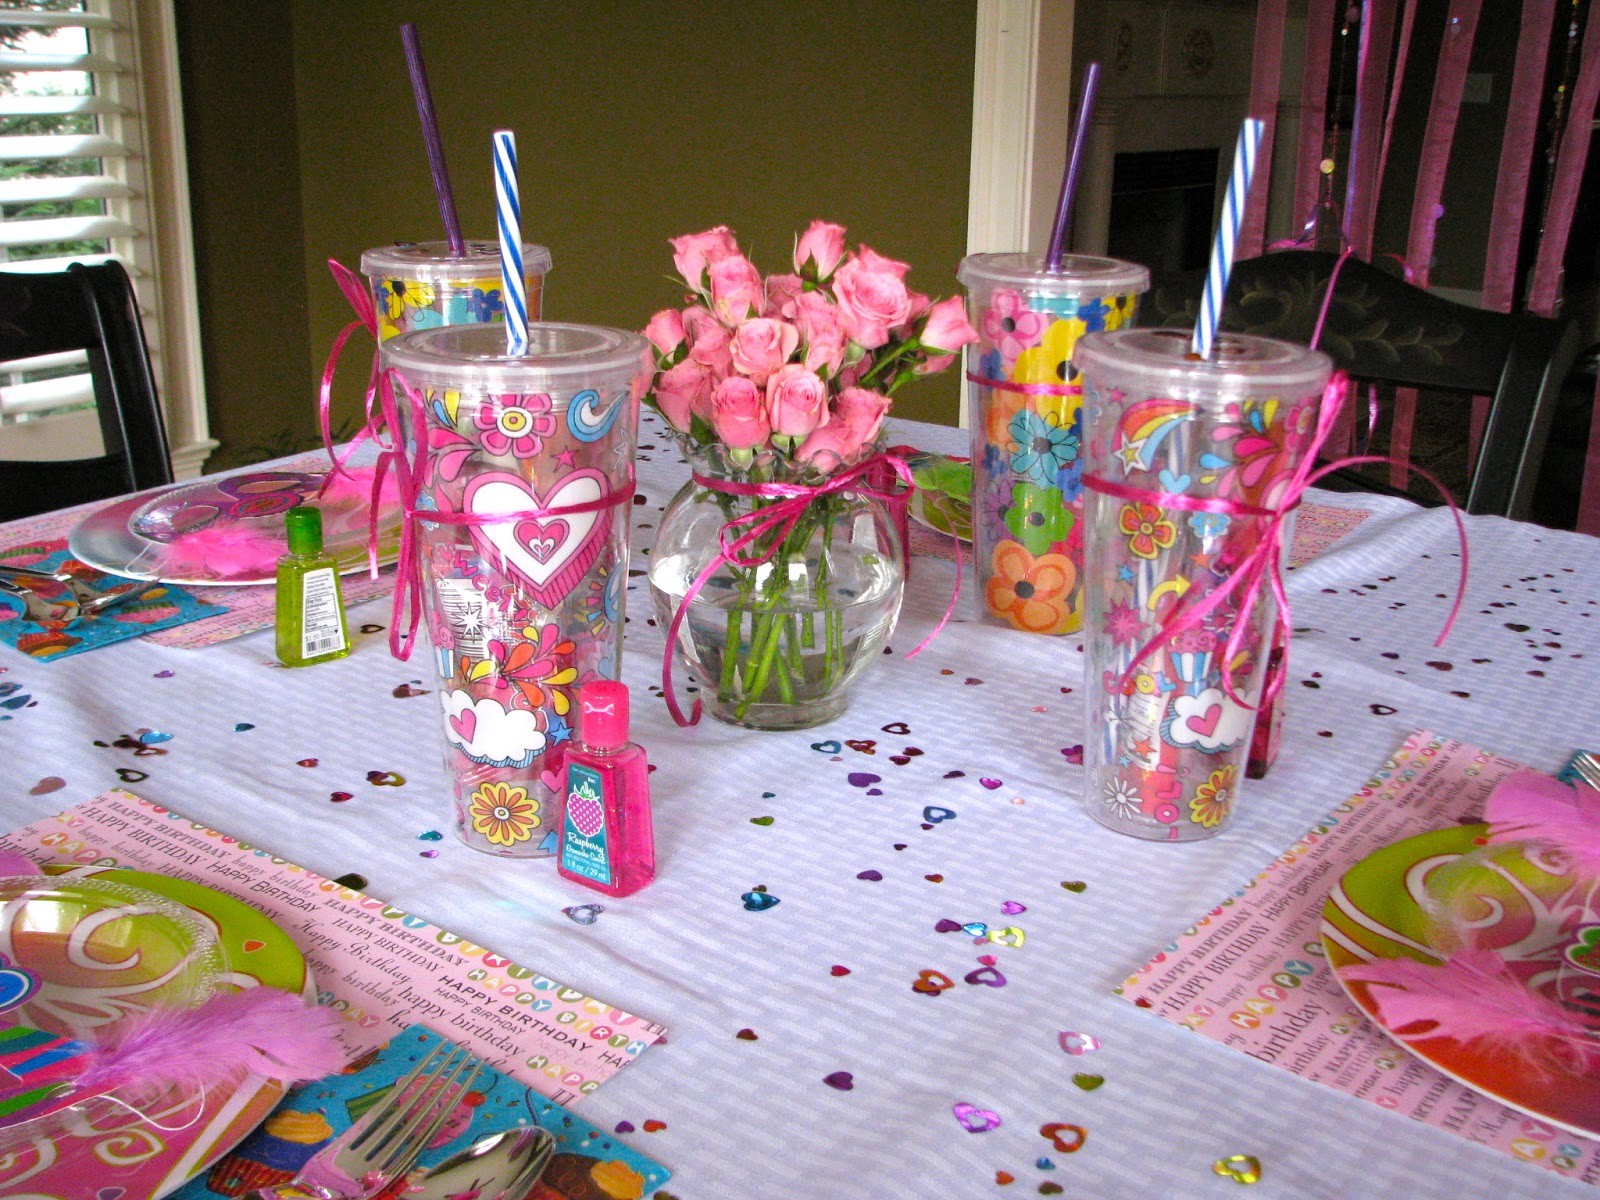 Homemadeville your place for homemade inspiration girl 39 s for Home made party decorations